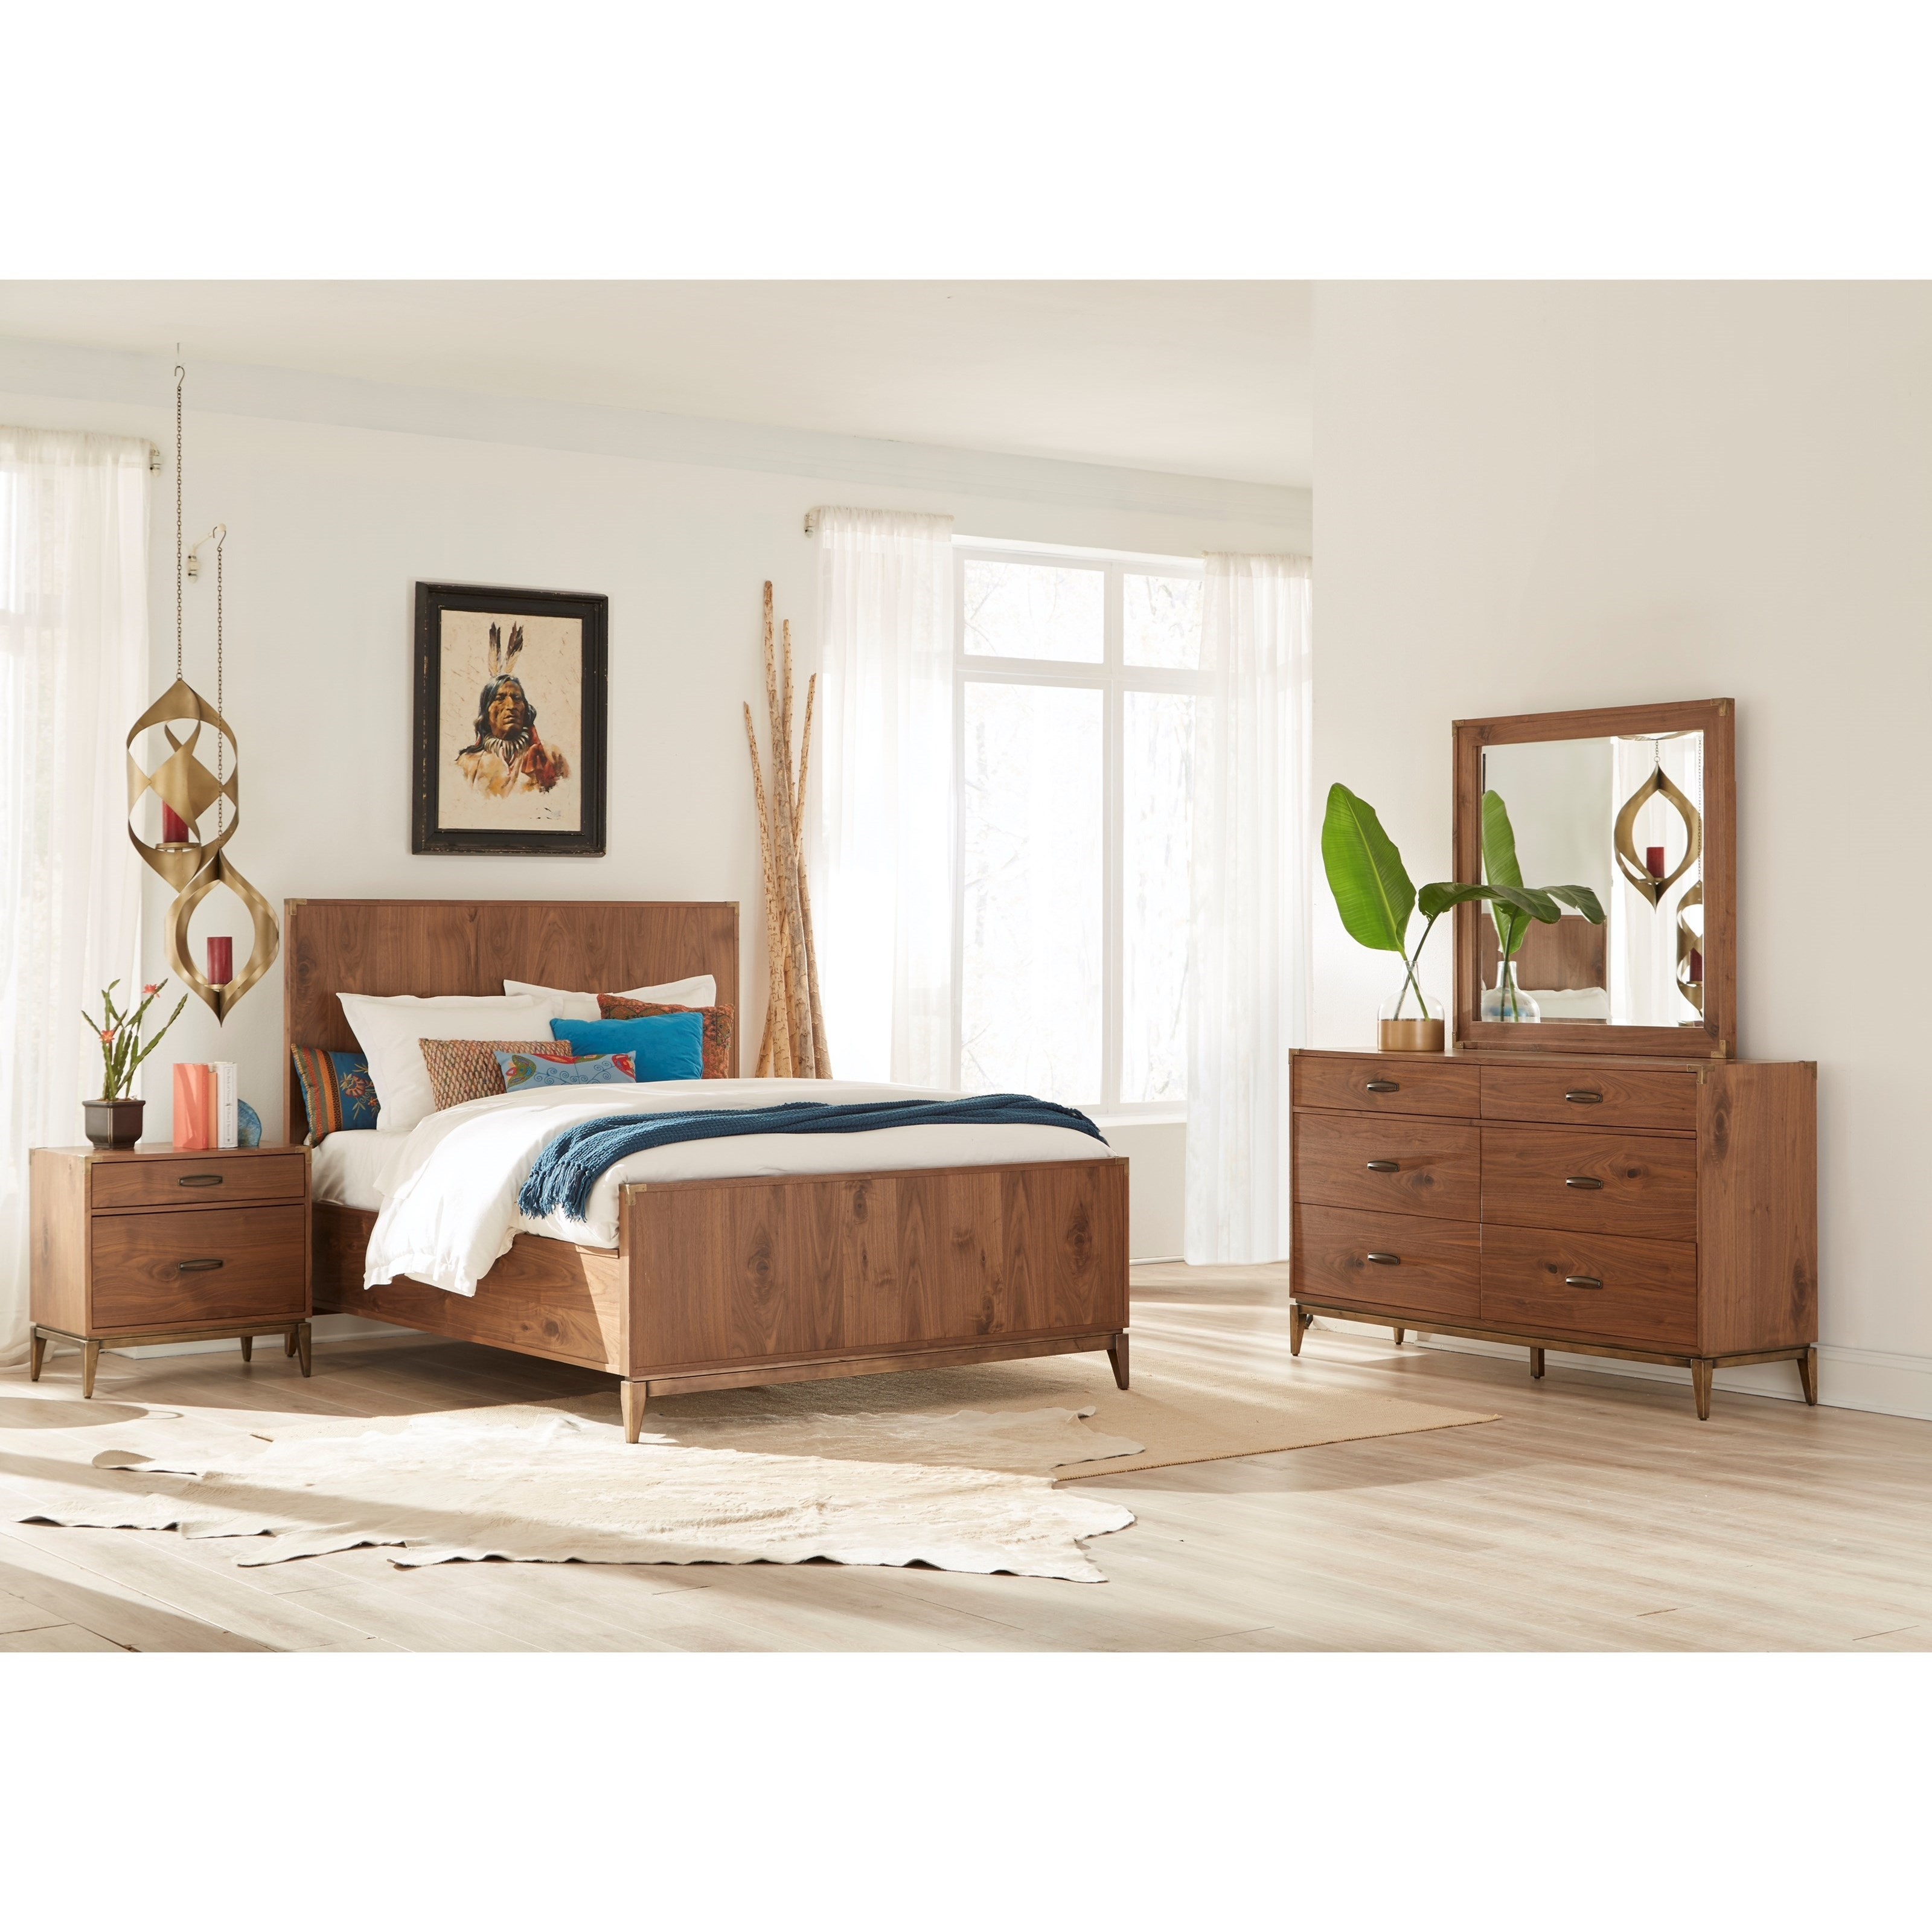 Adler King Bedroom Group at Sadler's Home Furnishings